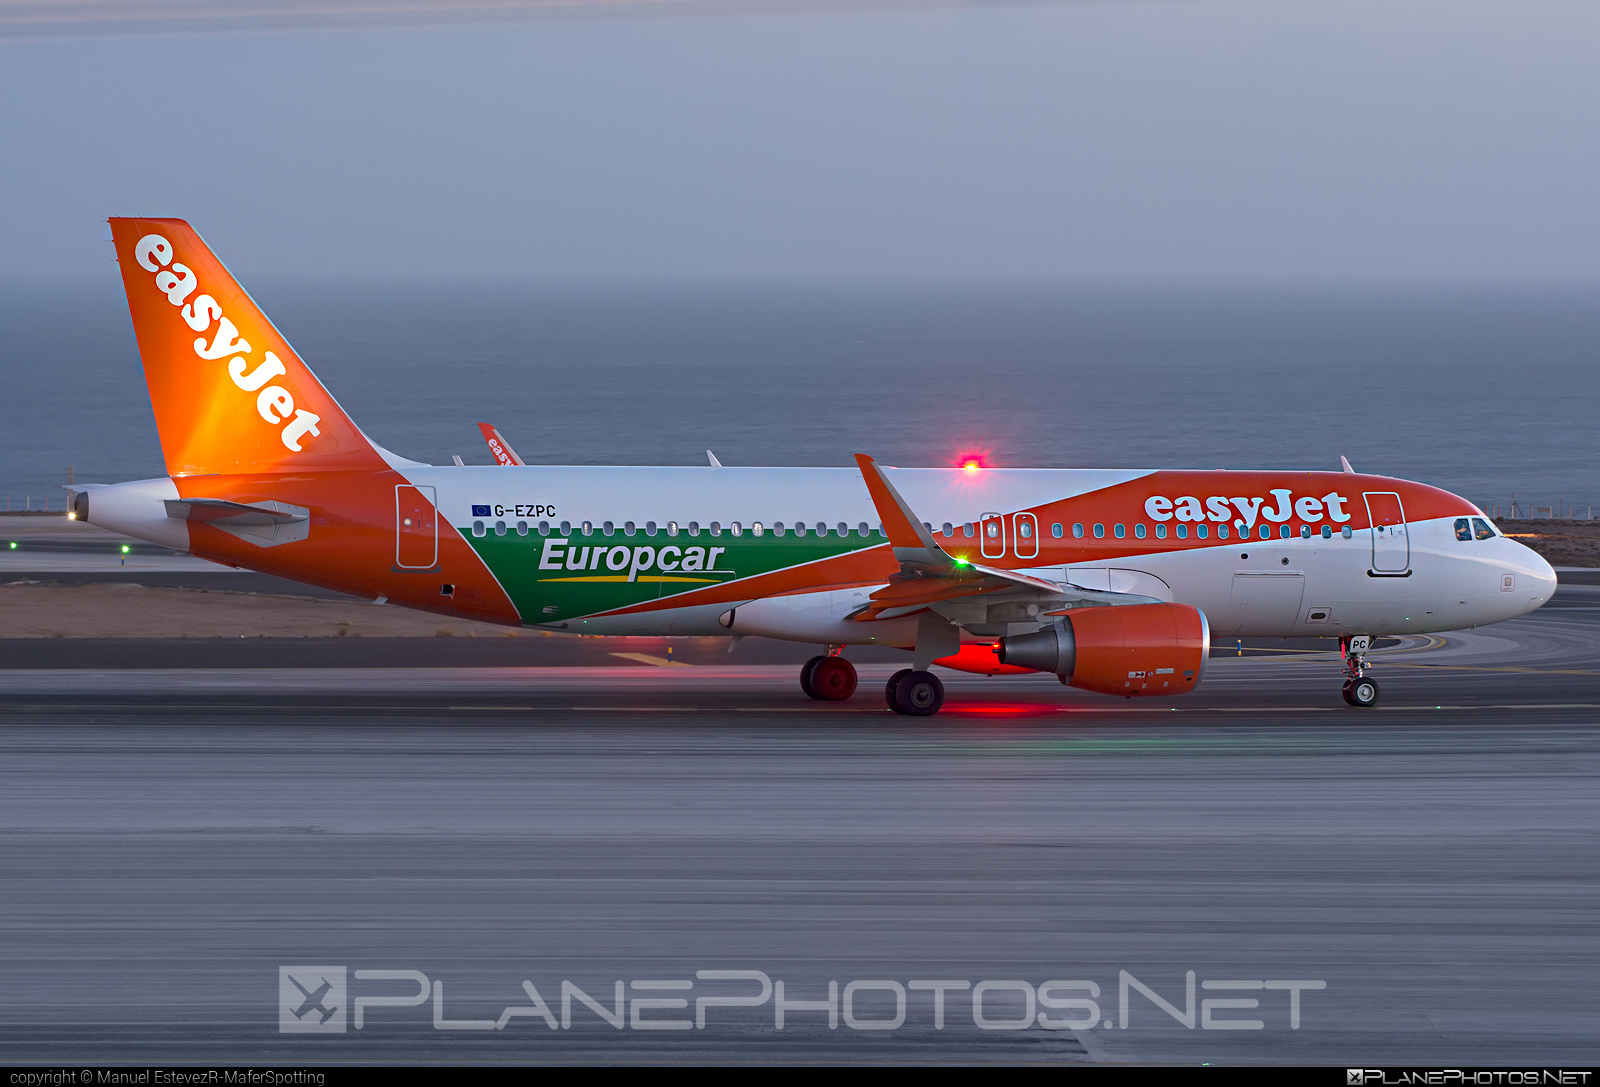 Airbus A320-214 - G-EZPC operated by easyJet #a320 #a320family #airbus #airbus320 #easyjet